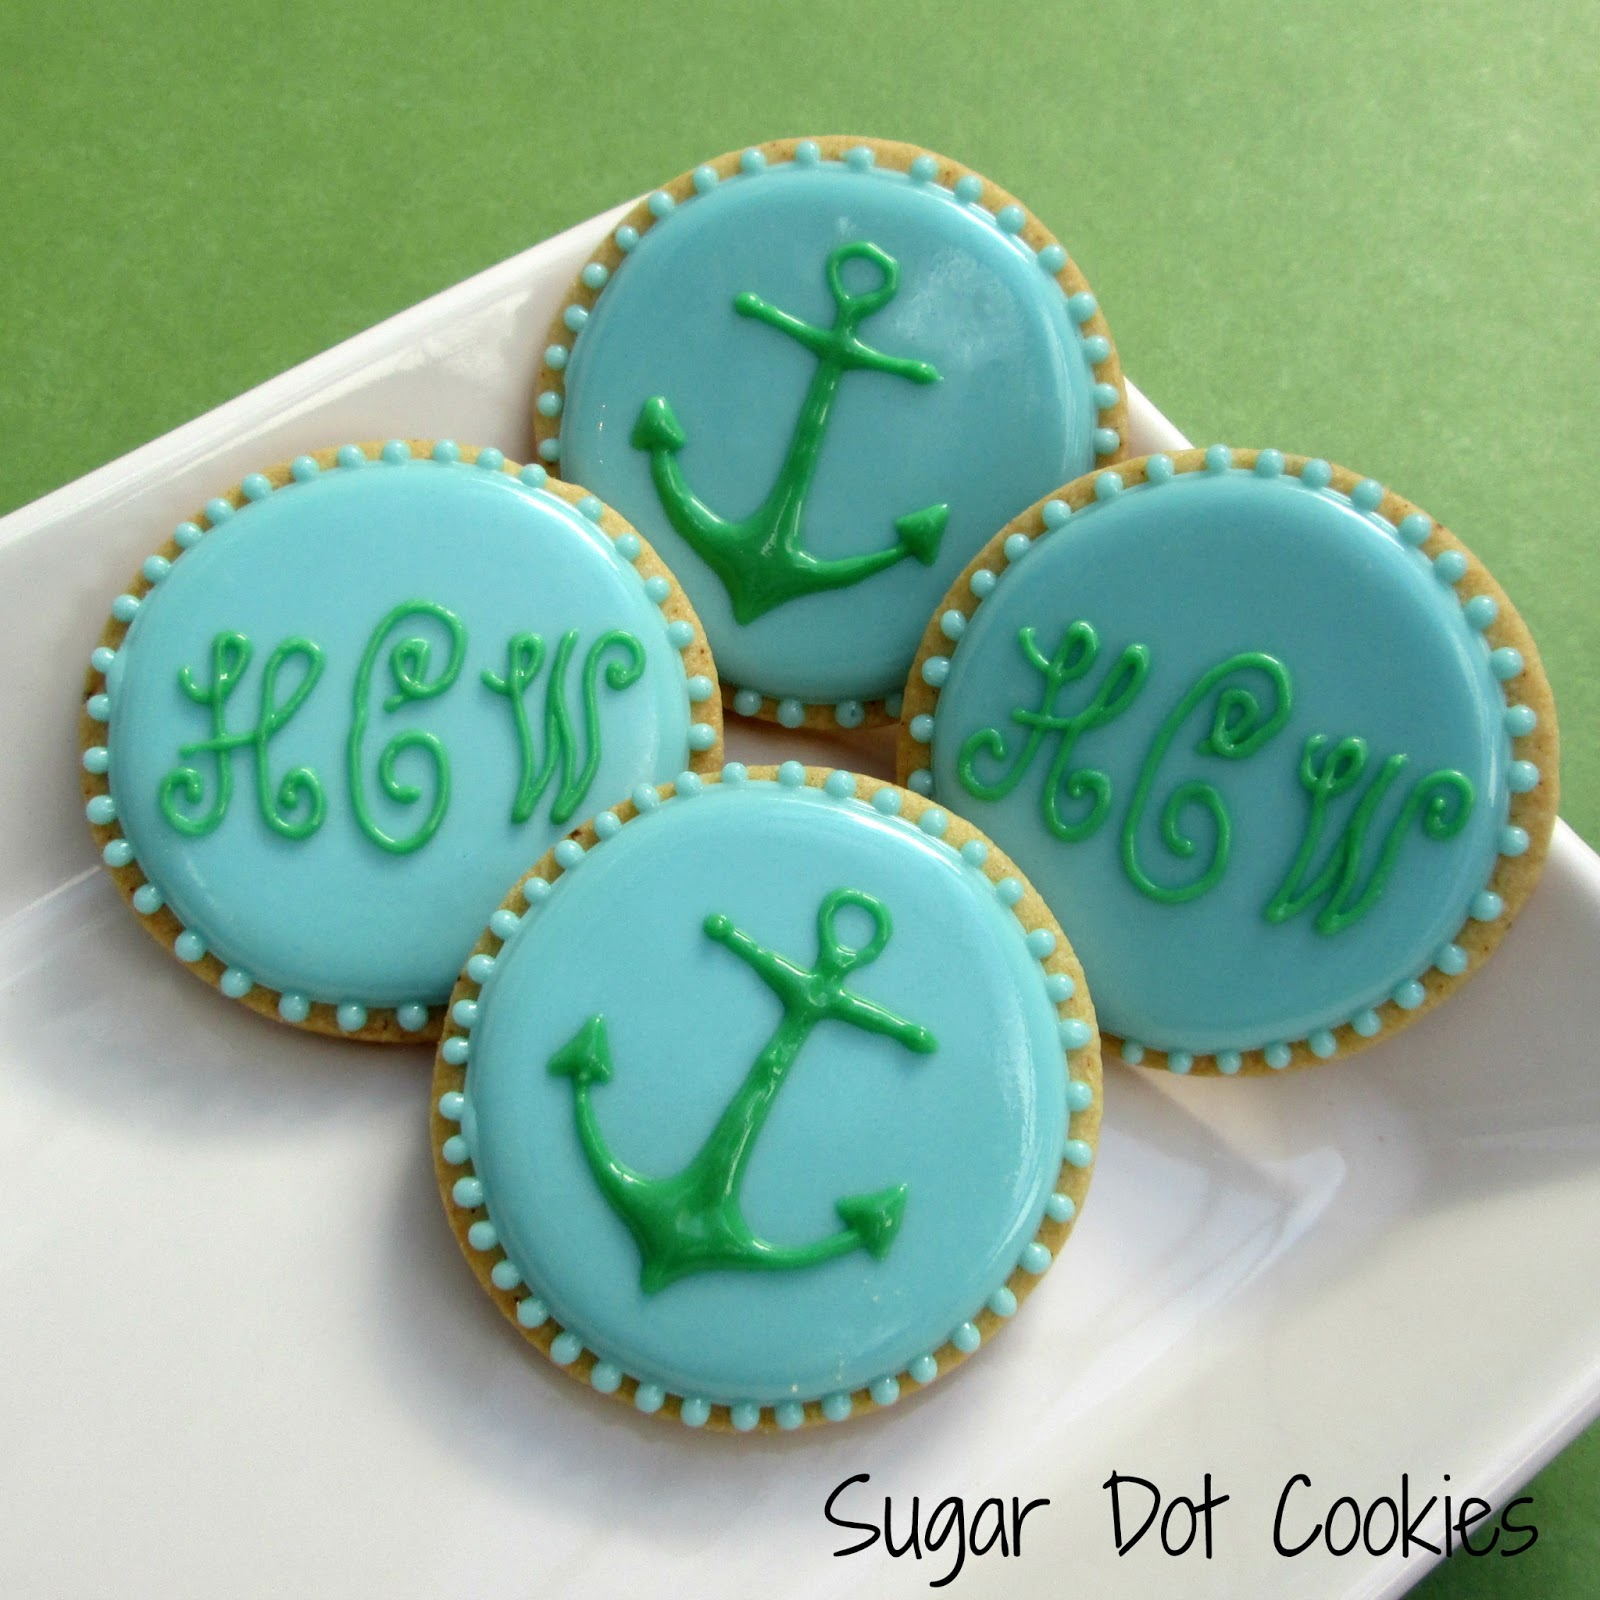 Anchors and monograms. Sweet.